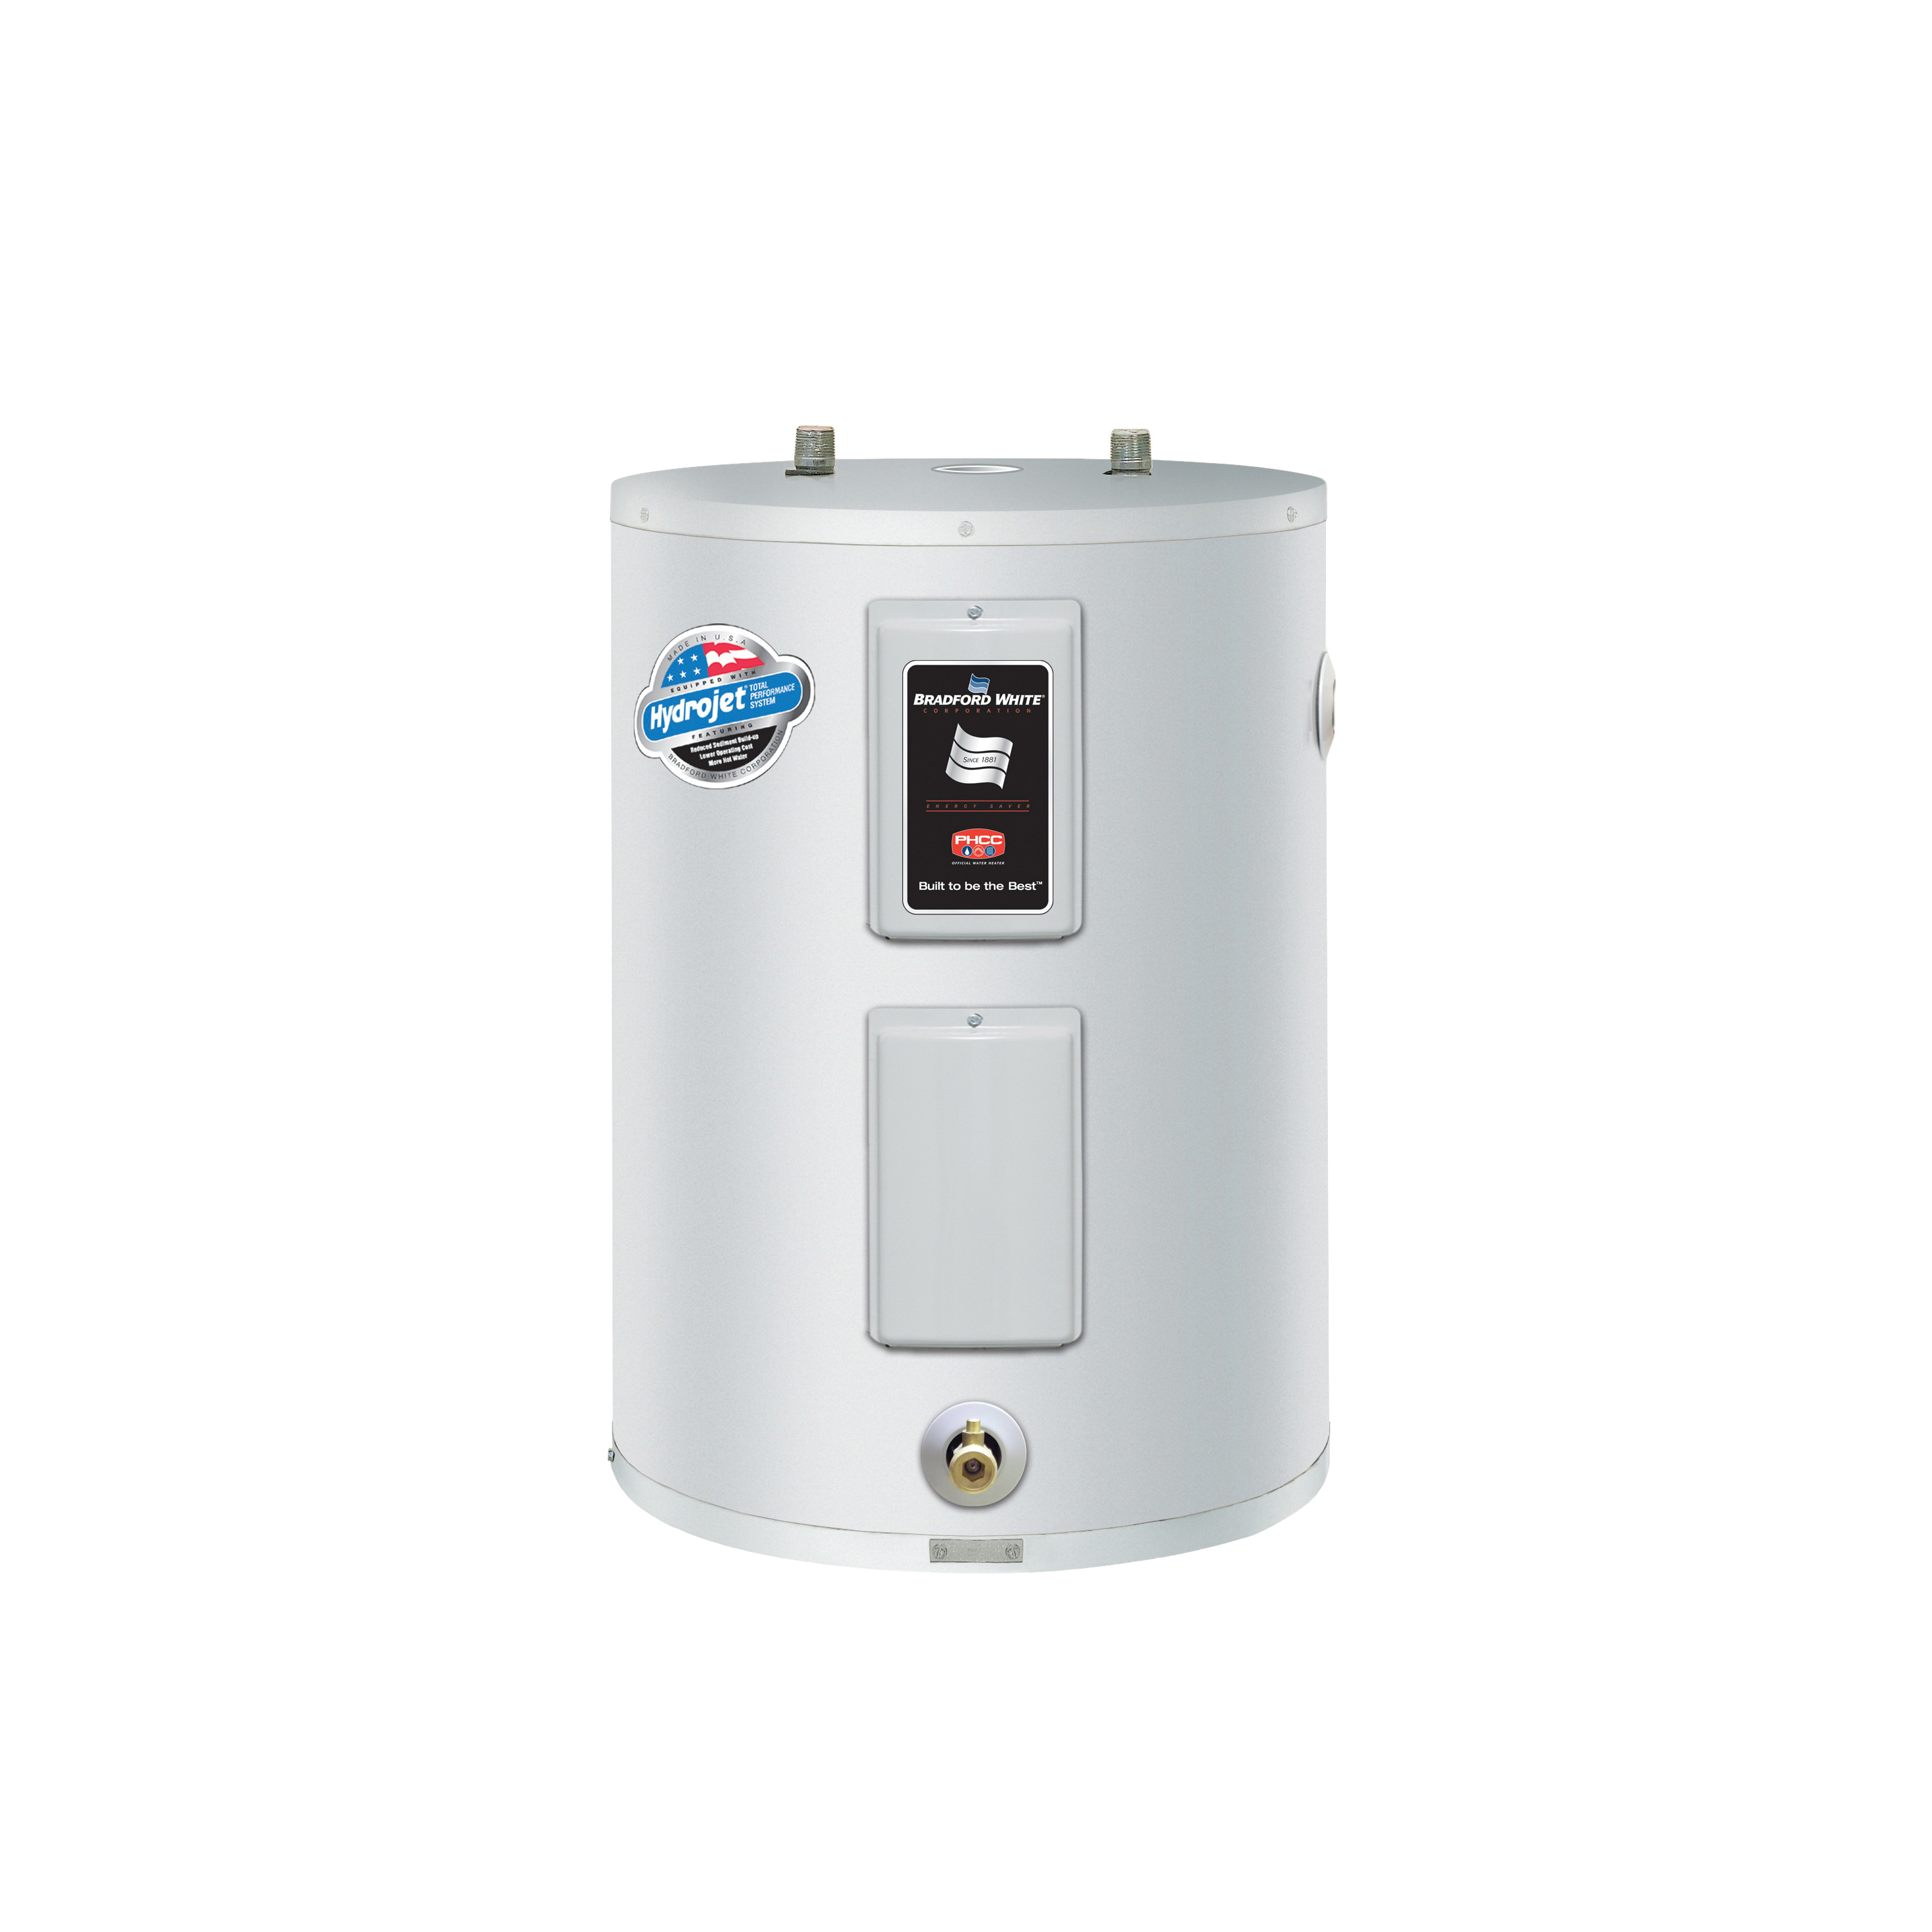 Products Bradford White Re240l6 1ncy Lowboy Electric Water Heater 38 Gal Tank 208 240 Vac 4000 W At 5500 1 Ph